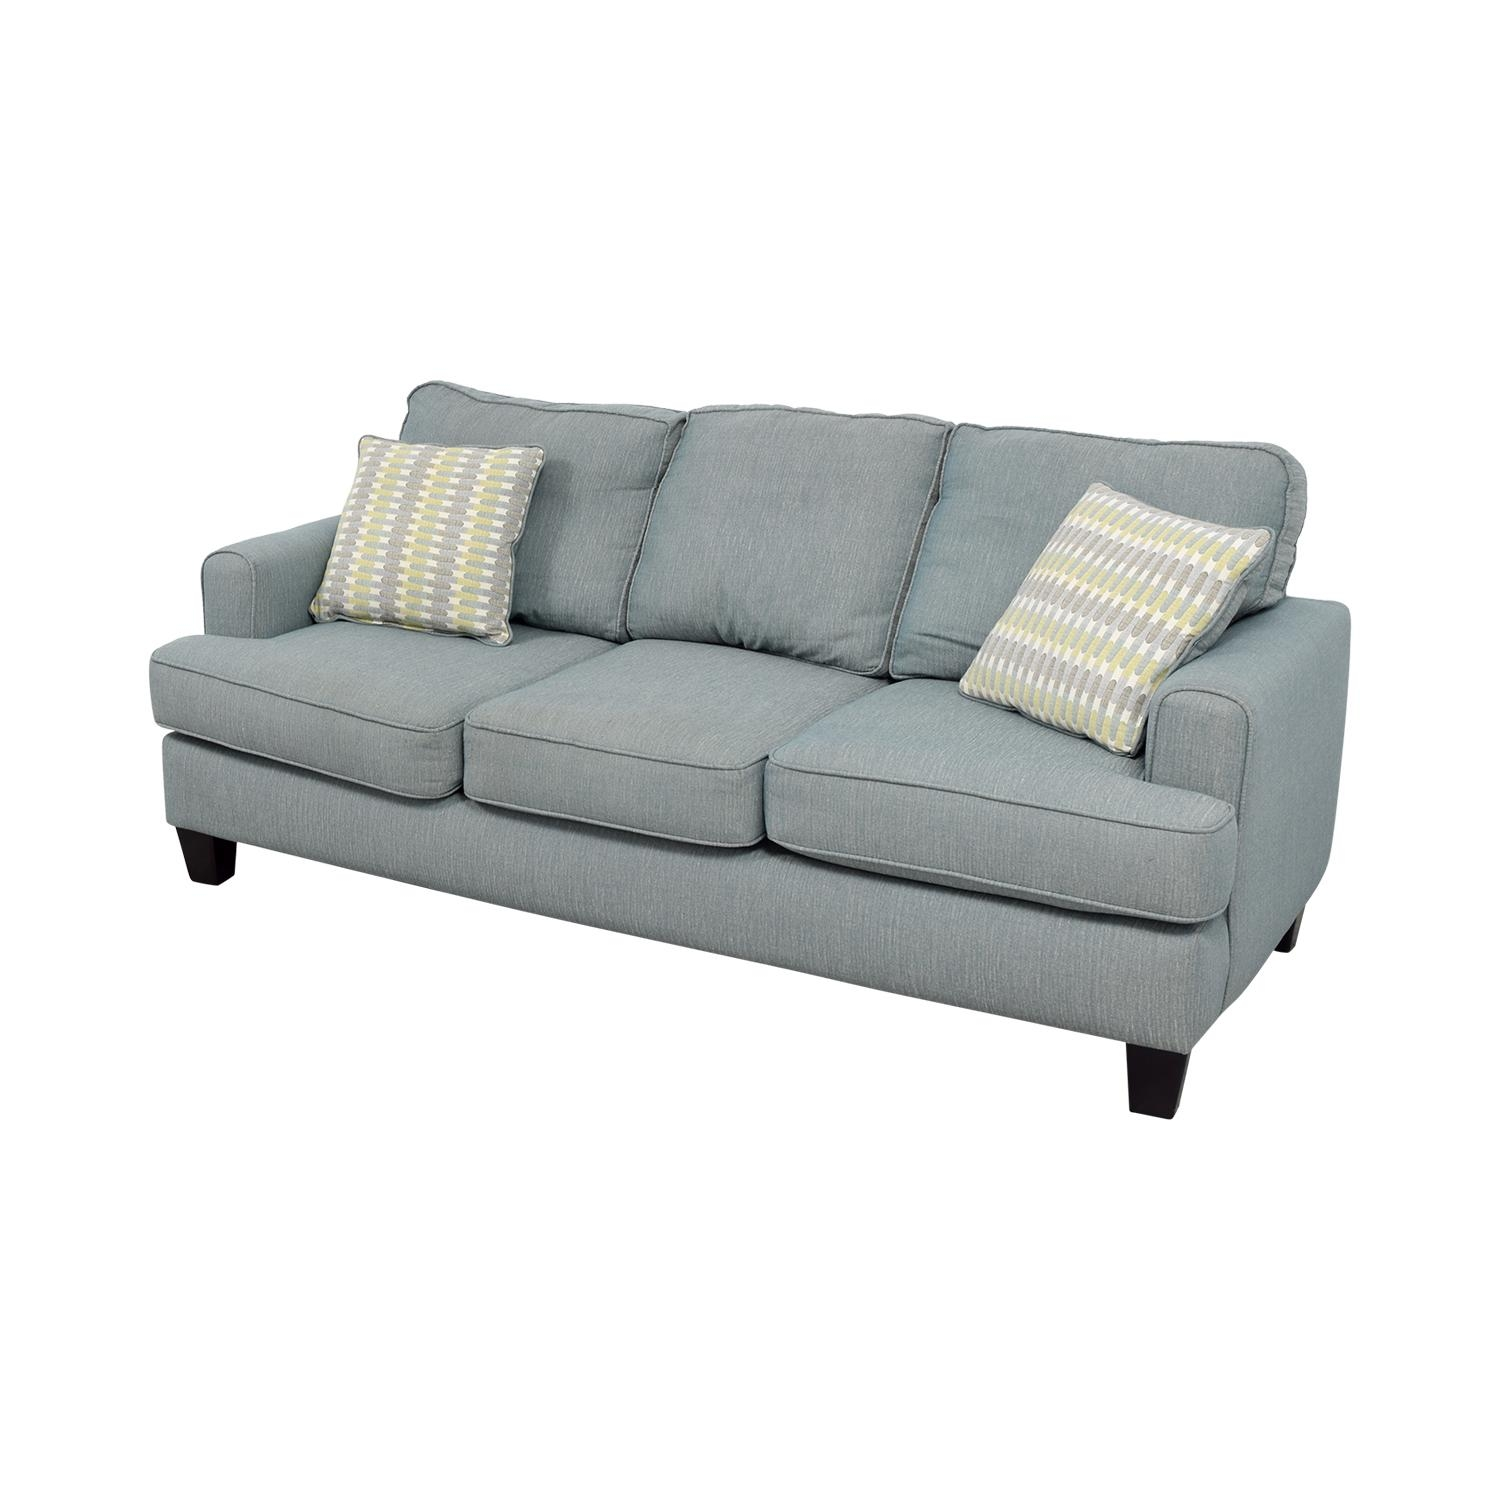 34% Off – Raymour And Flanigan Raymour And Flanigan Willoughby Throughout 3 Seater Sofas For Sale (View 9 of 21)